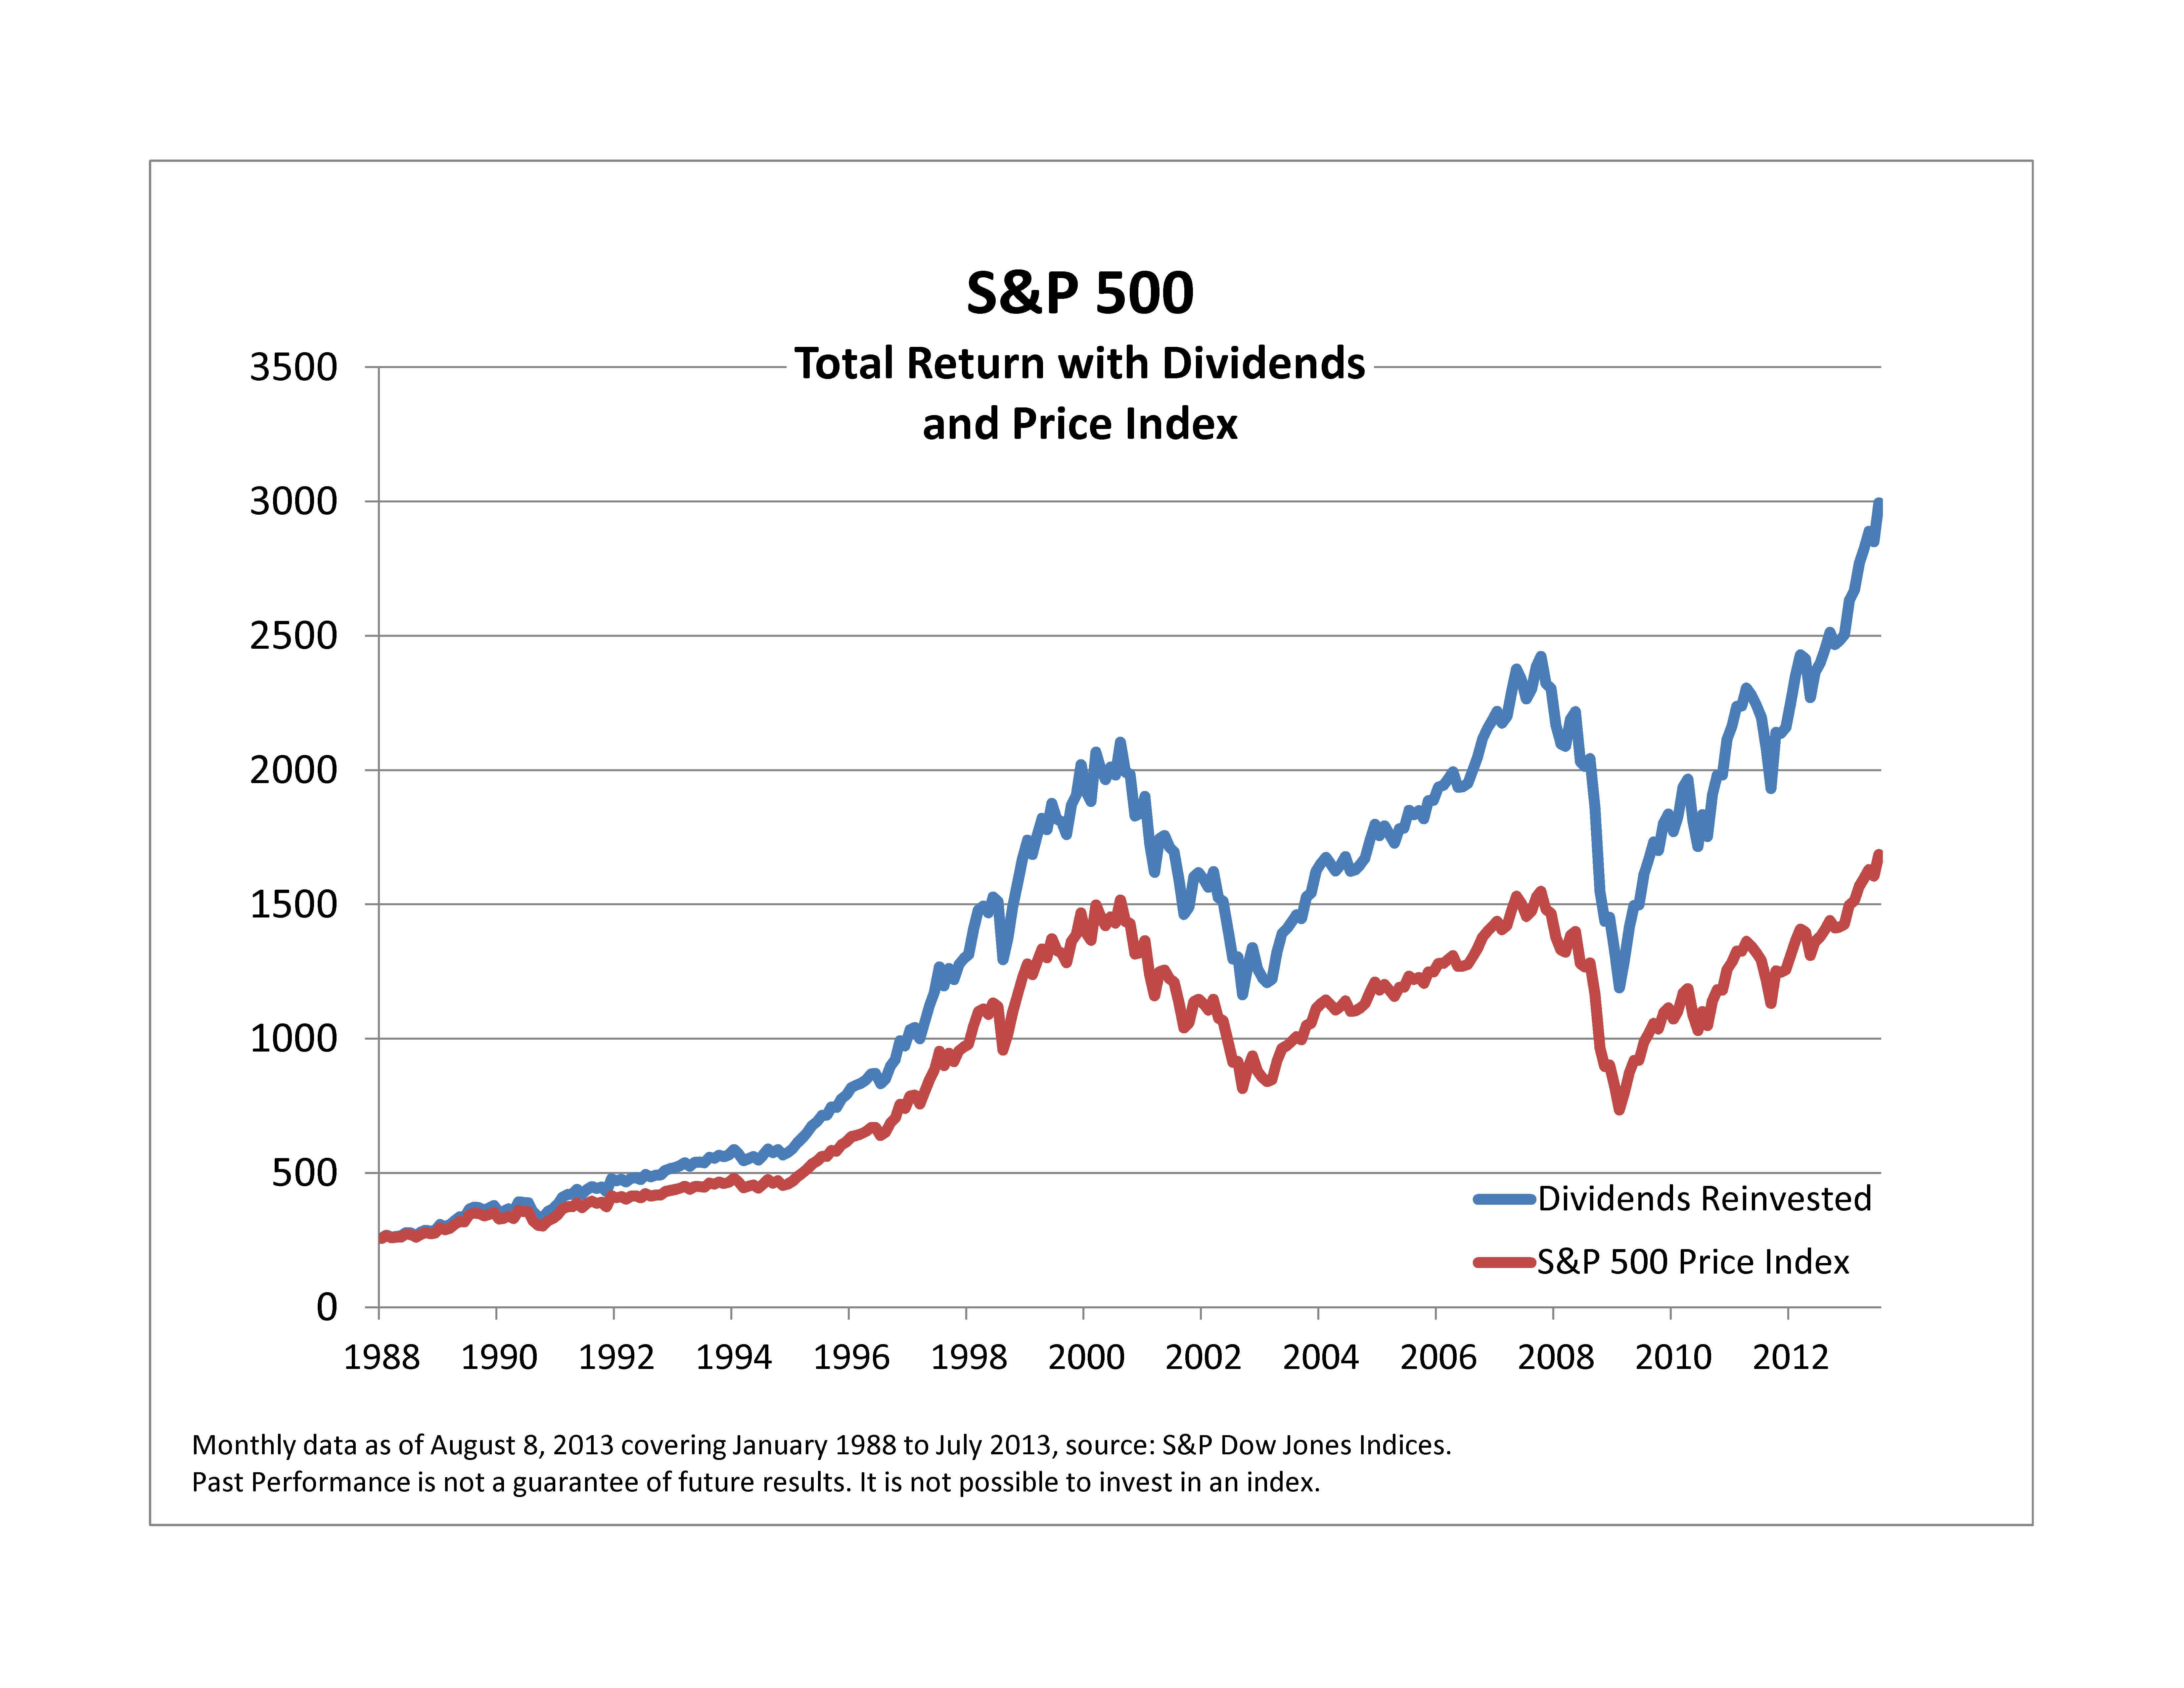 On The Difference In Returns Between S&P 500 Price and Total Return Index | TopForeignStocks.com